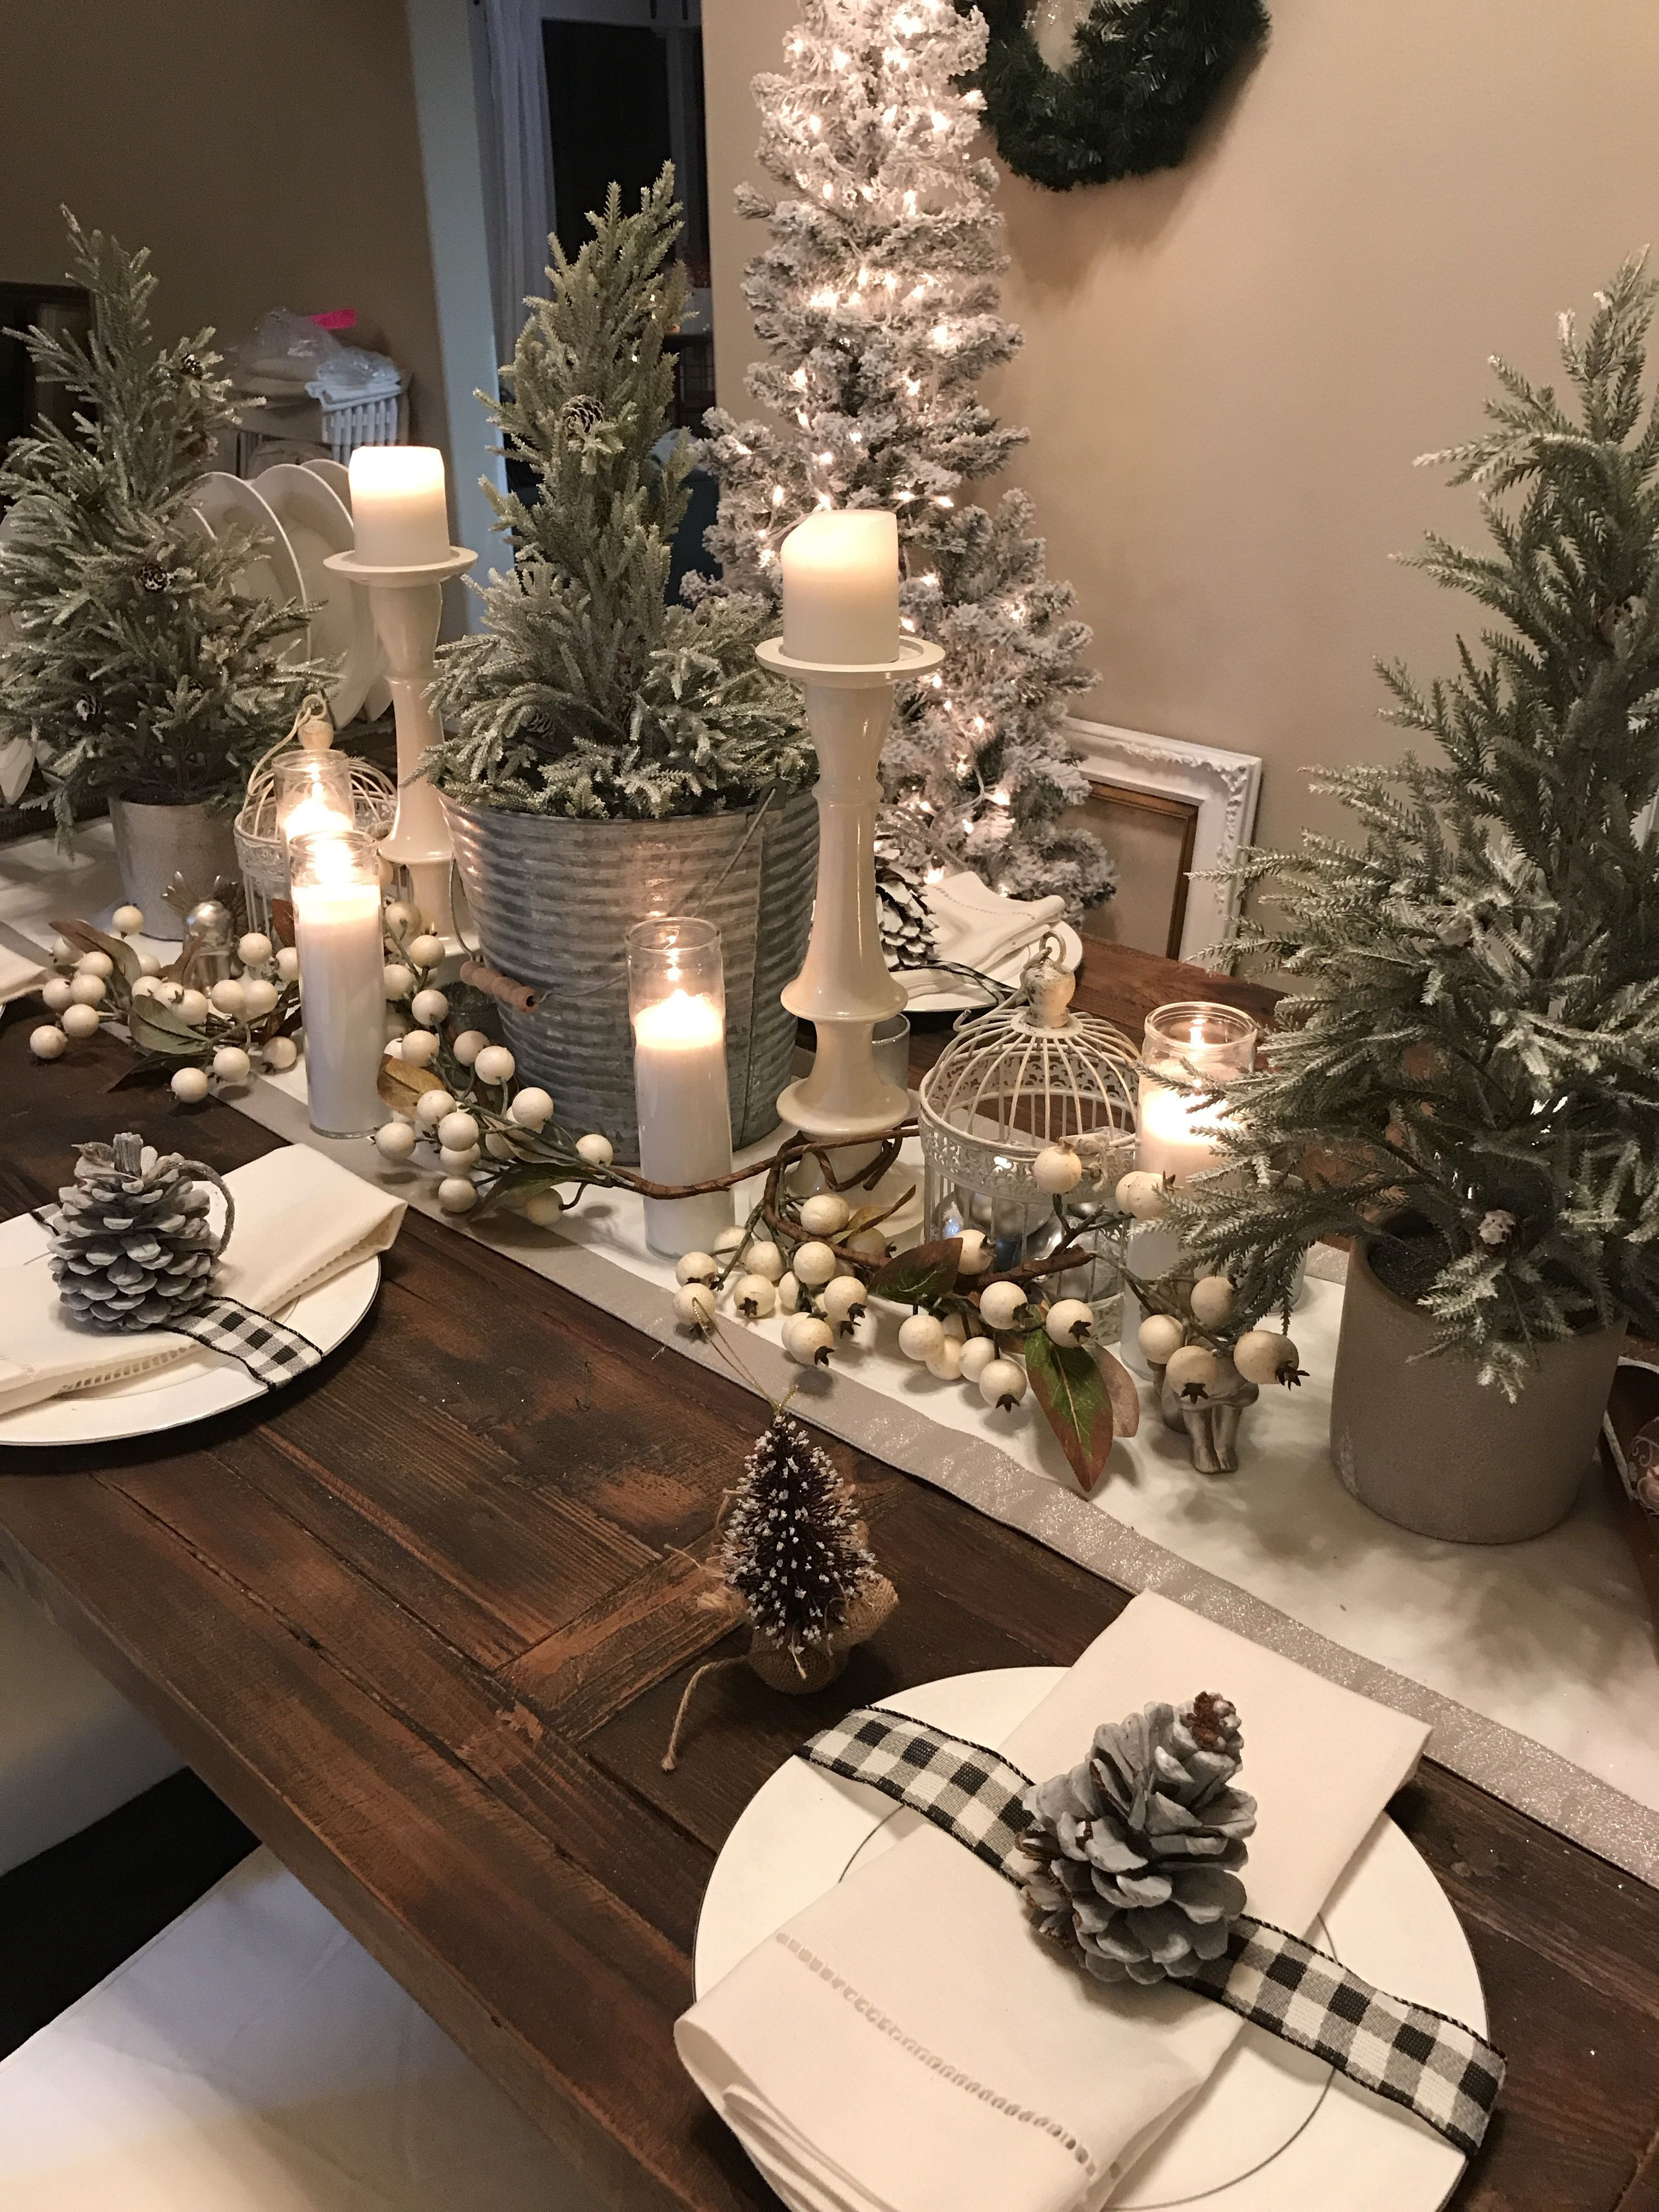 Pin By Judy Zachow On Holiday Decorating In 2020 Christmas Table Centerpieces Indoor Christmas Decorations Christmas Table Decorations